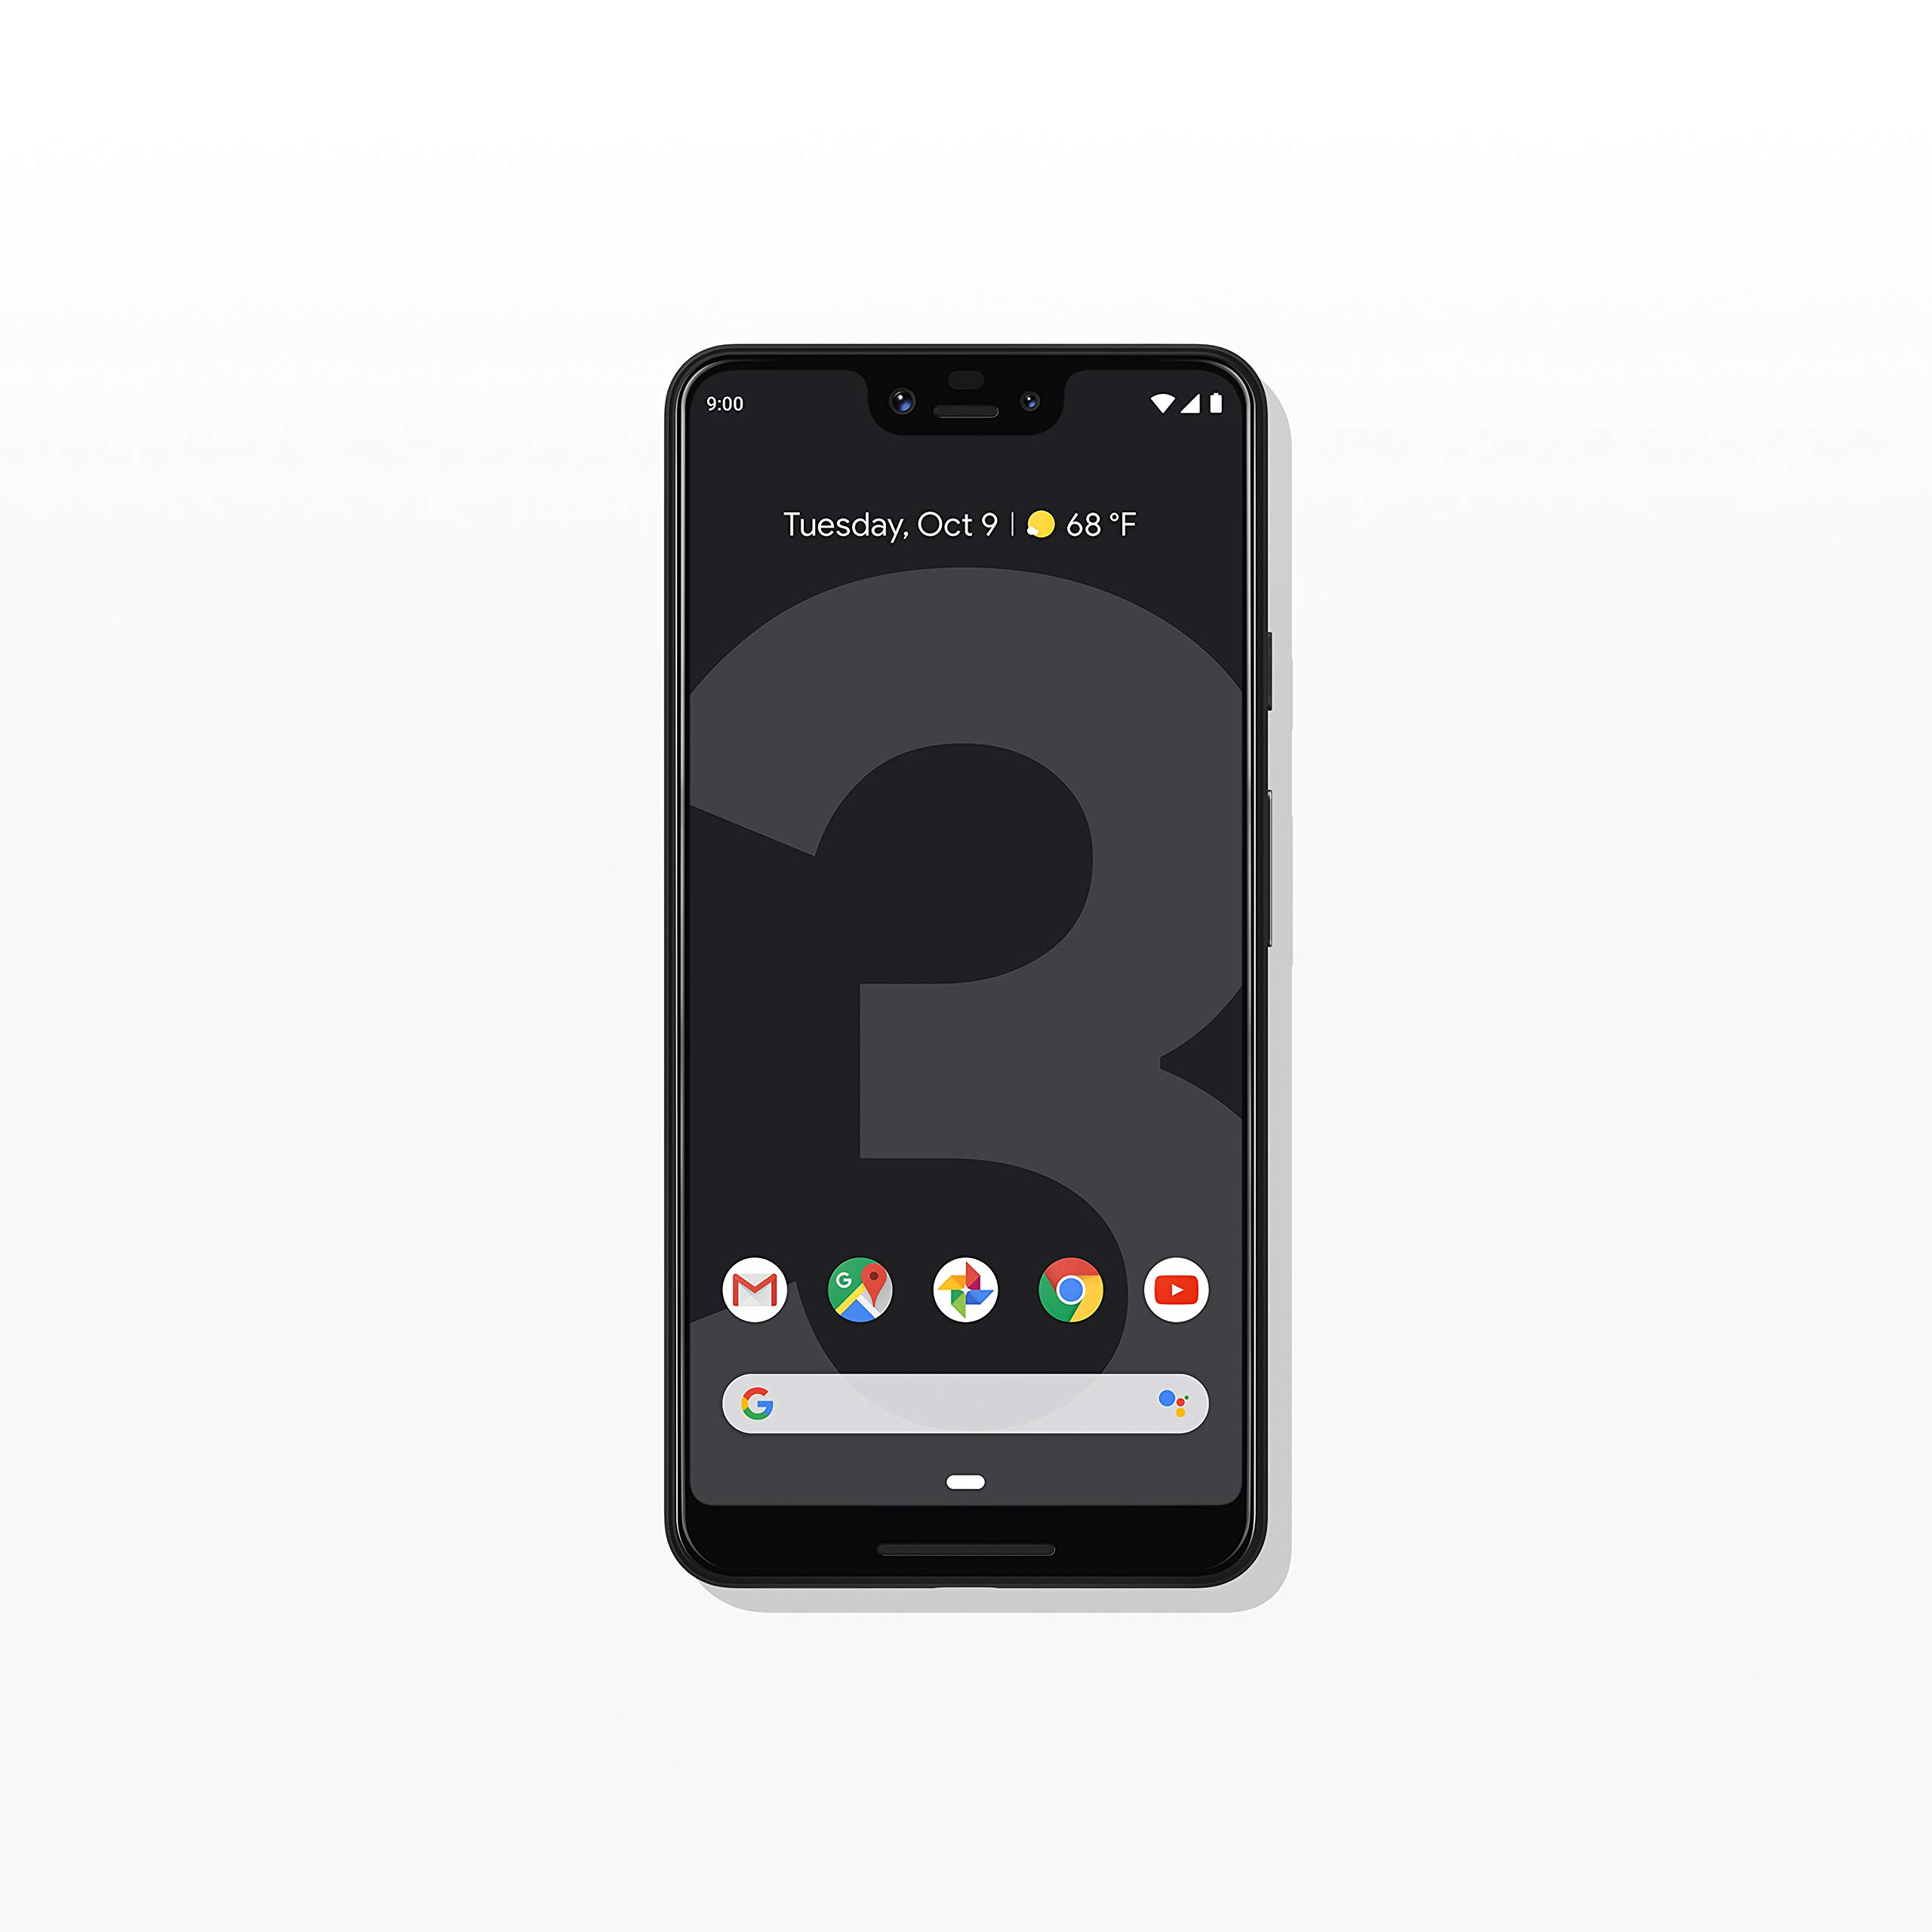 Google – Pixel 3 XL with 64GB Memory Cell Phone (Unlocked) – Just Black